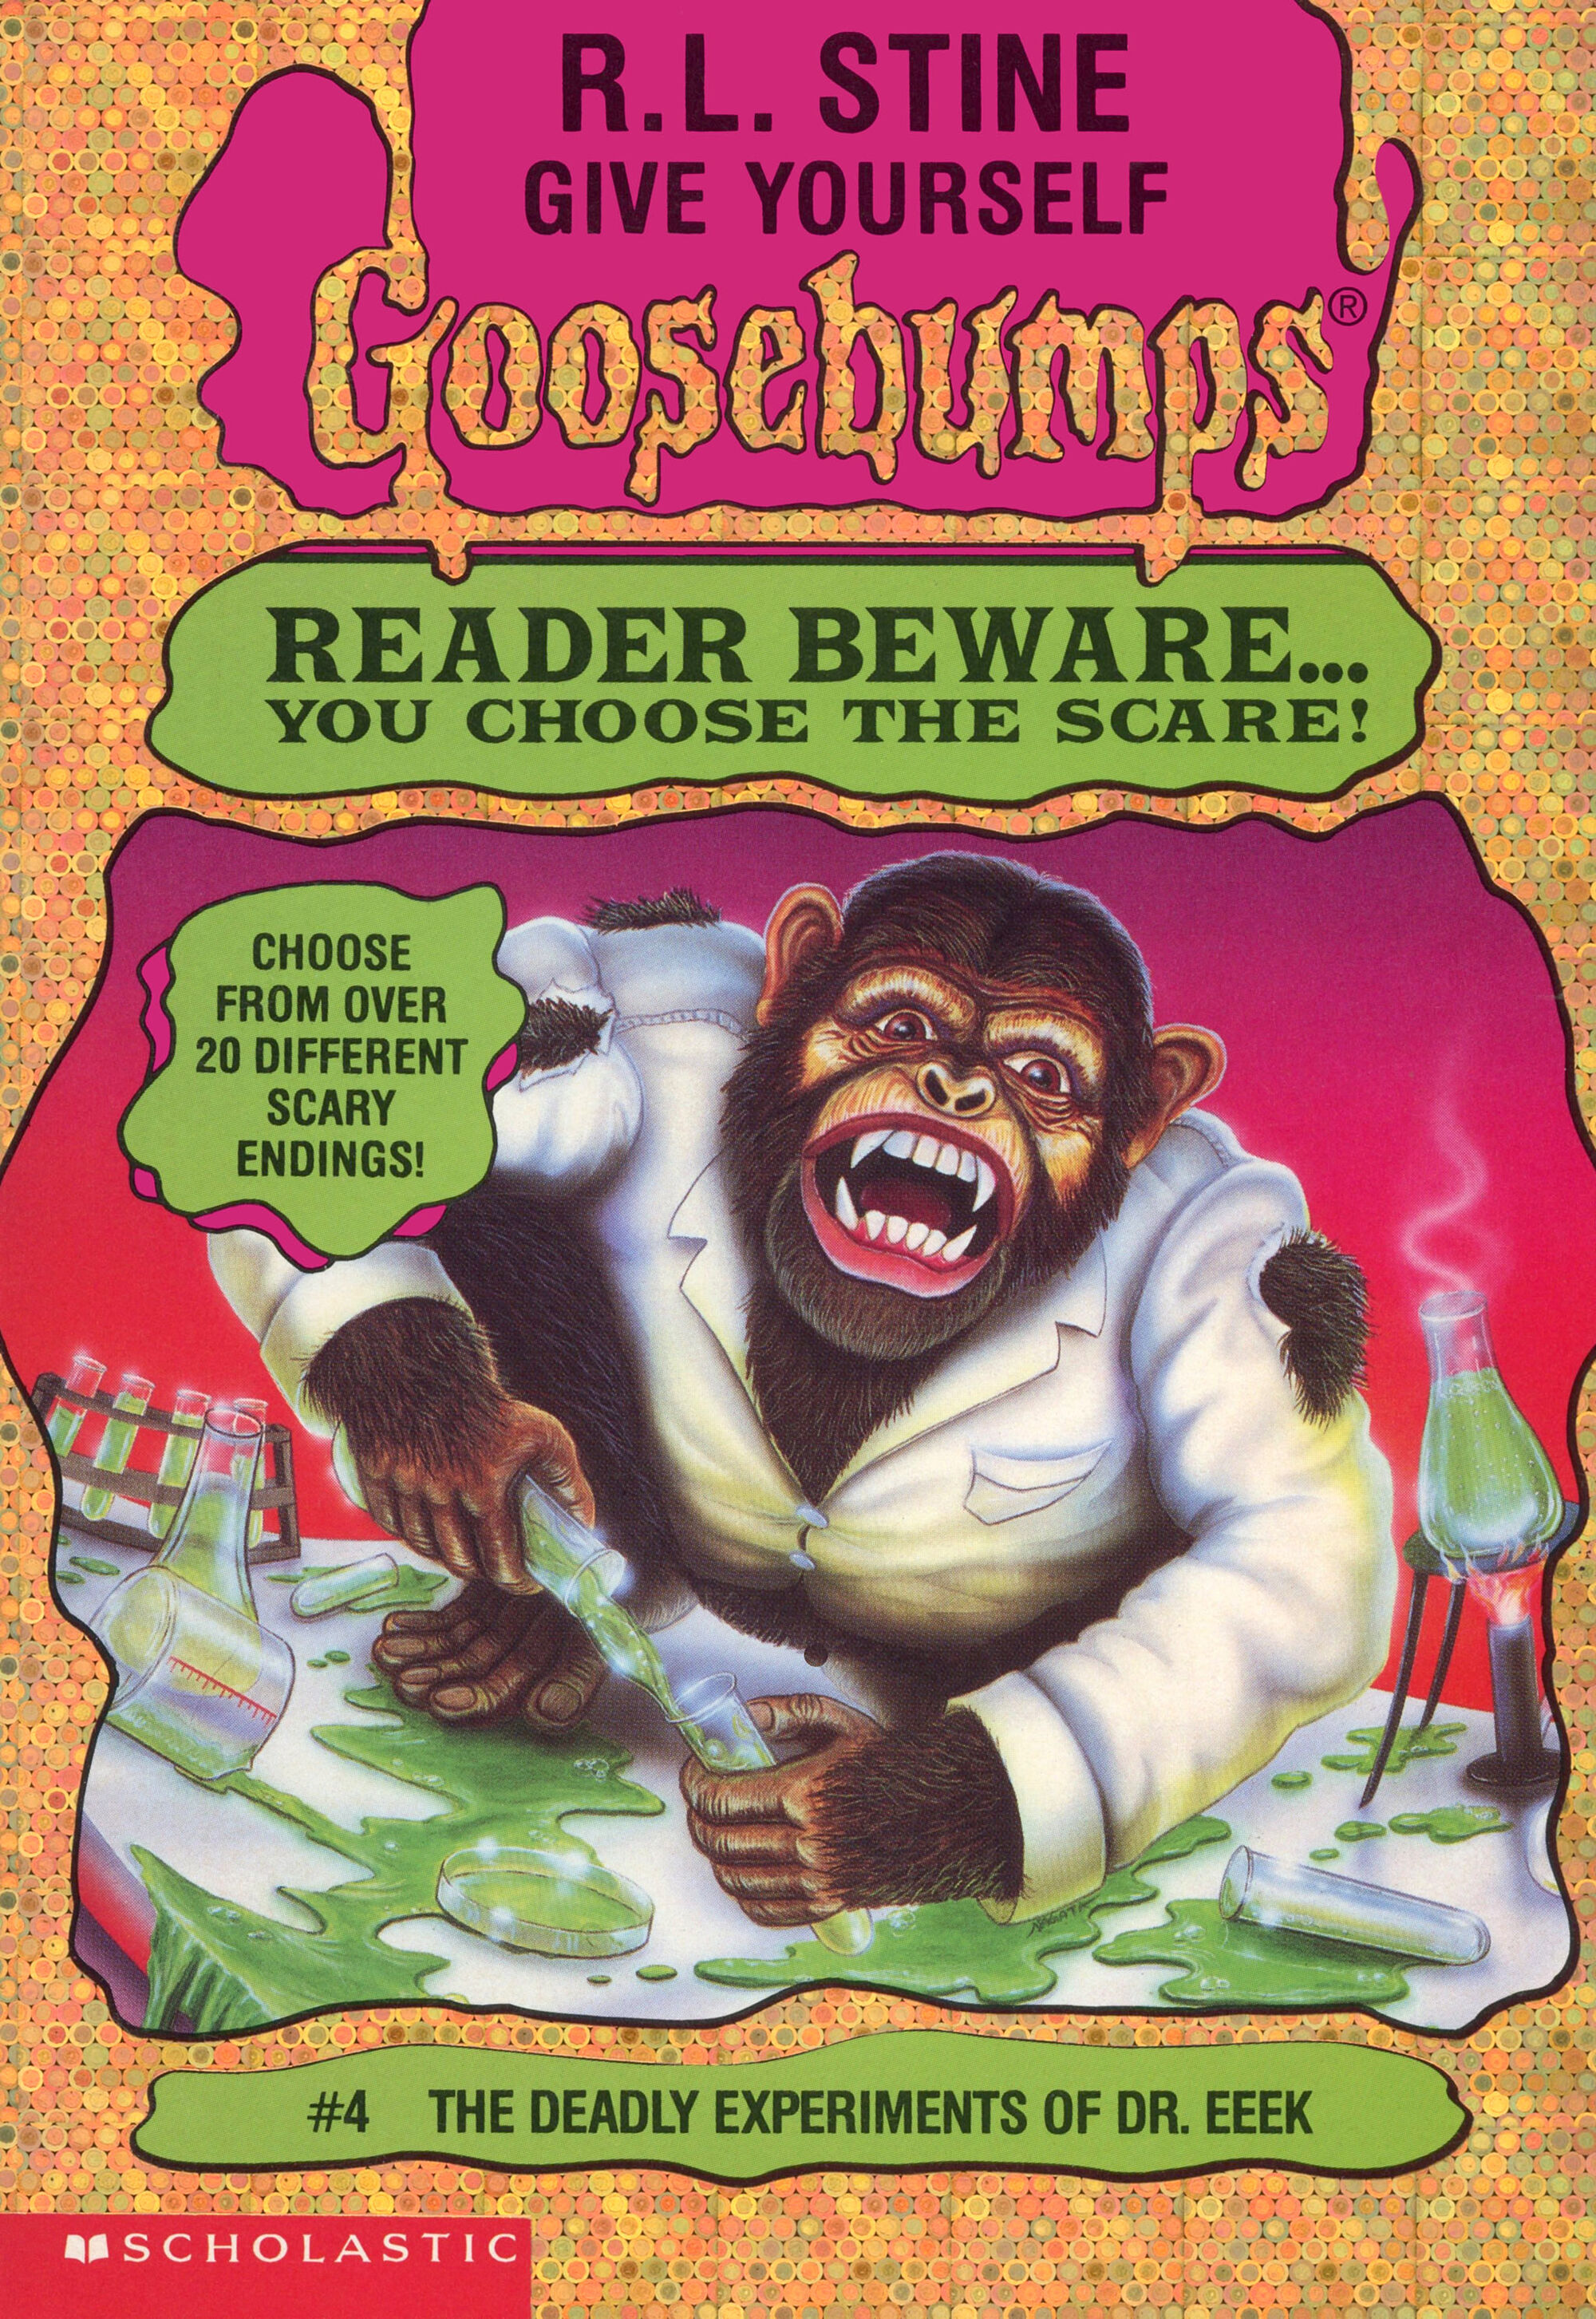 The Deadly Experiments of Dr  Eeek | Goosebumps Wiki | FANDOM